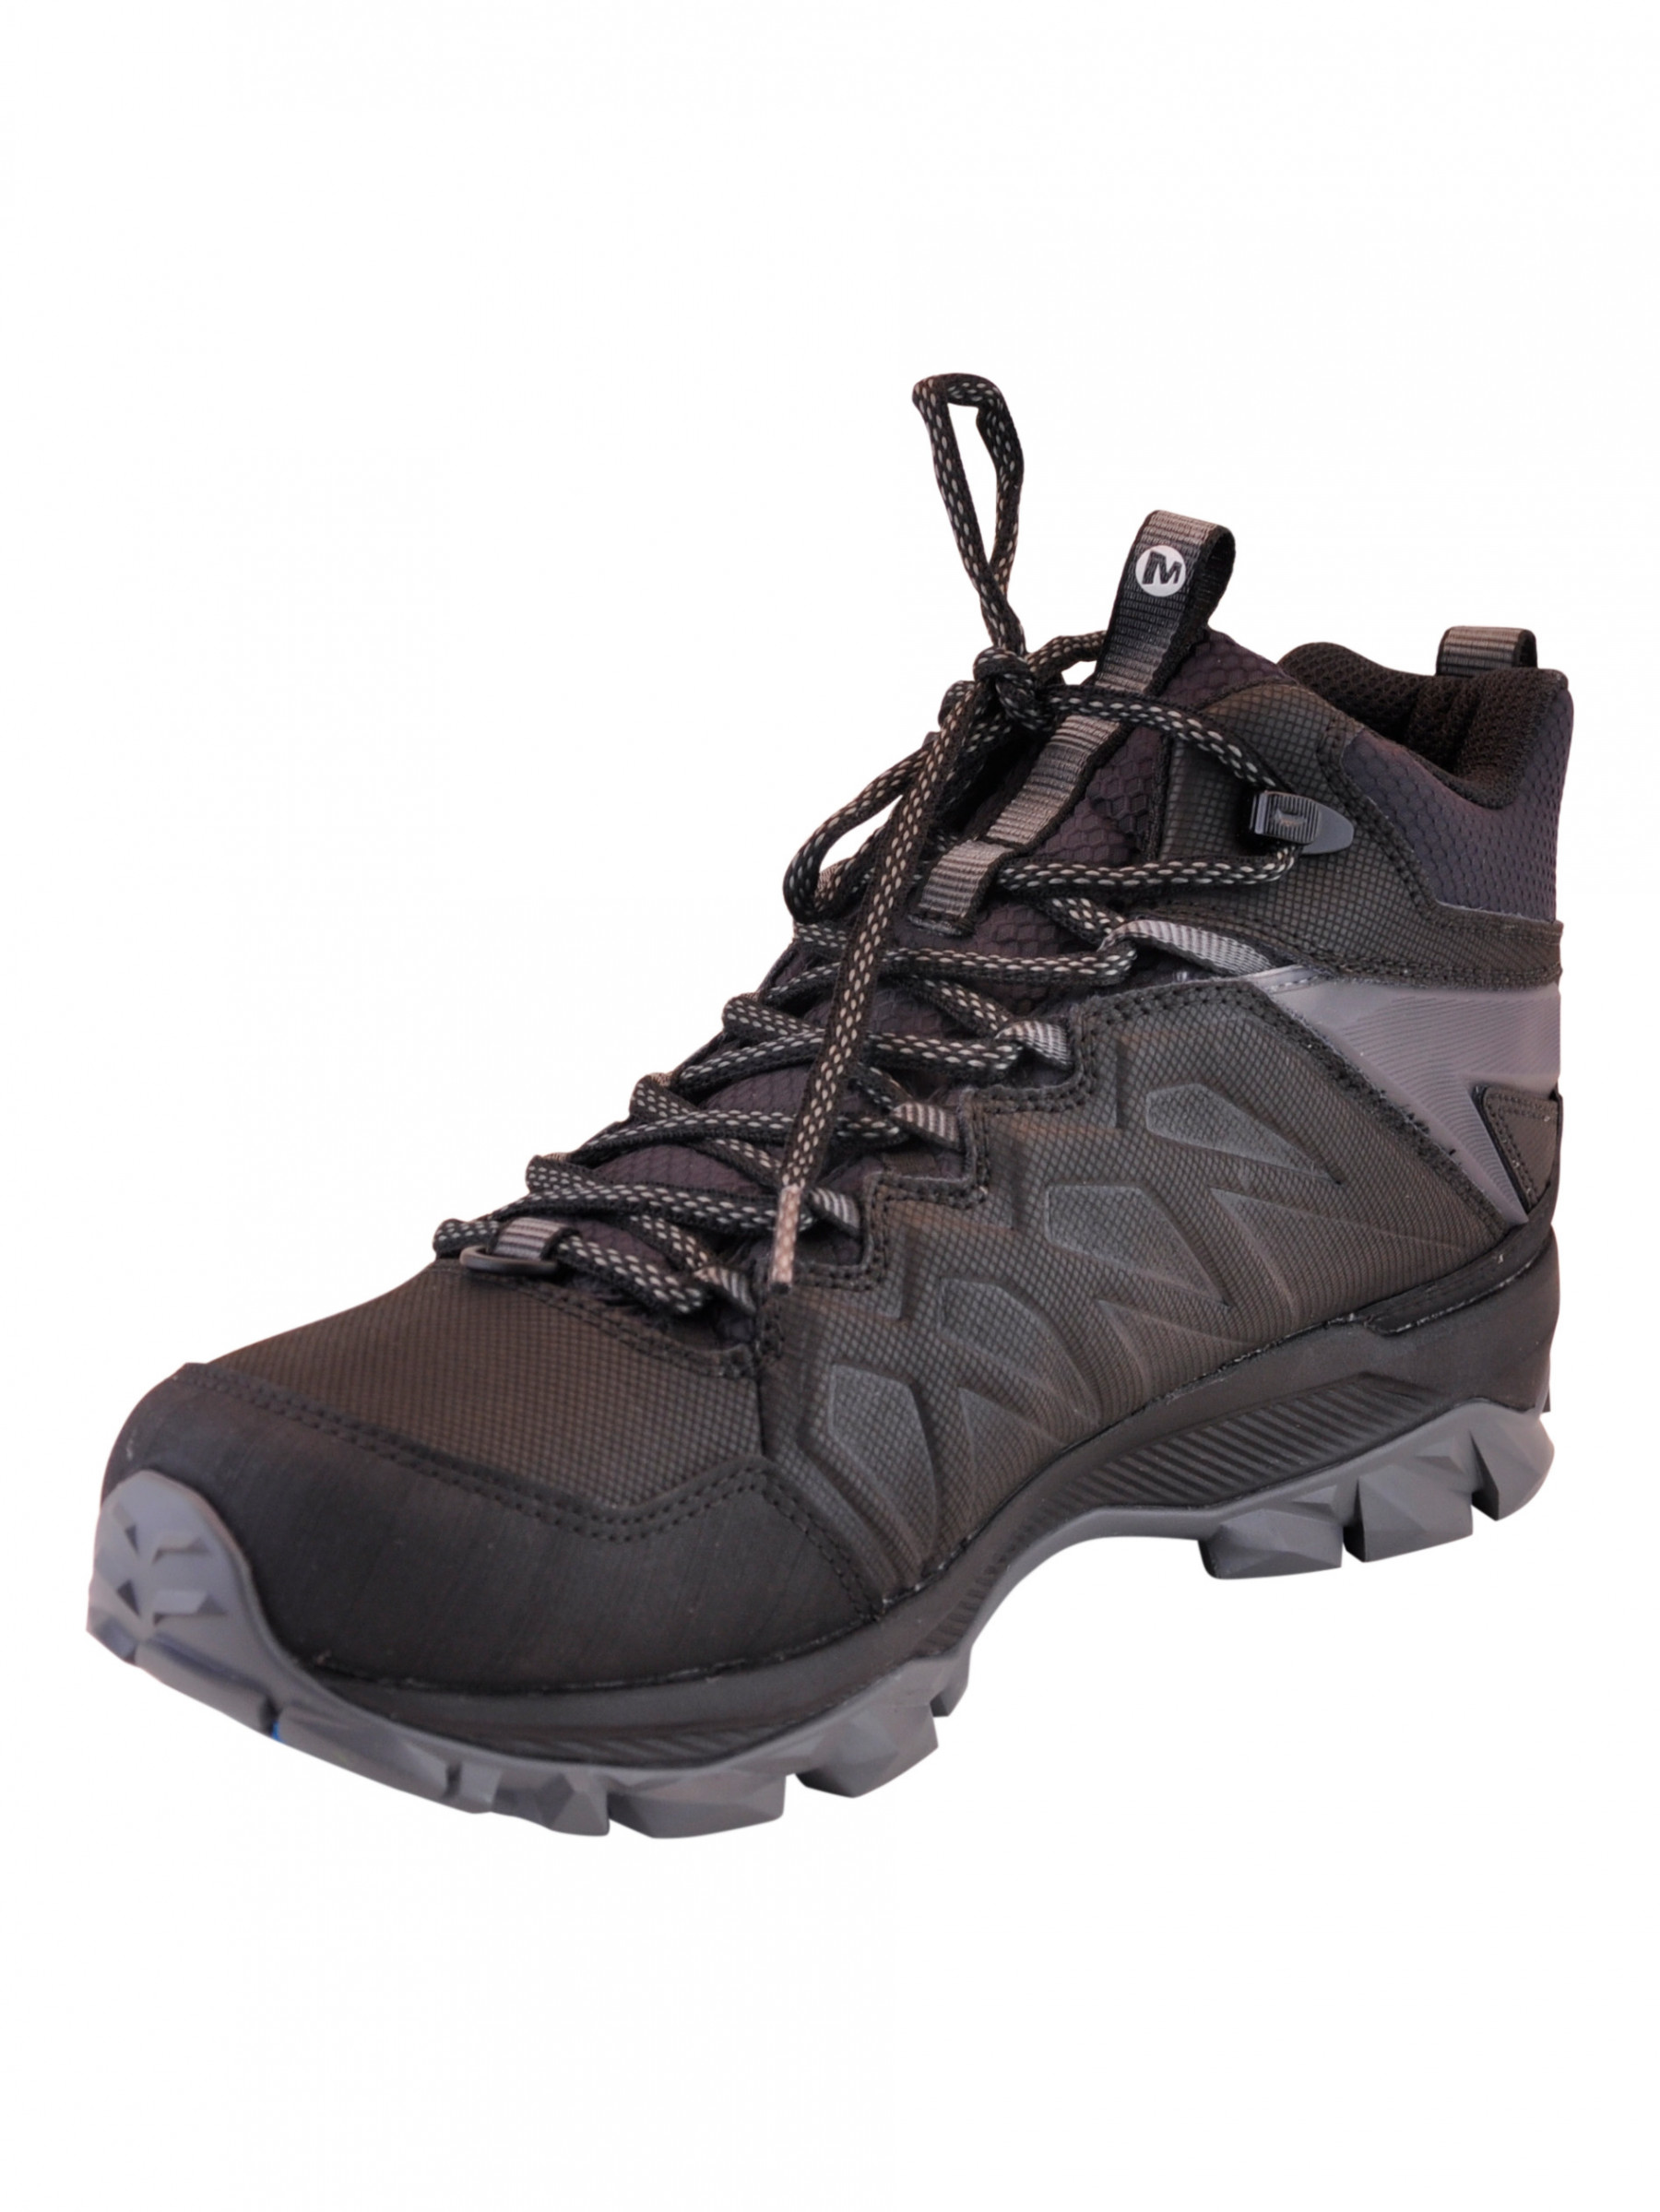 Merrell Thermo Freeze mid WP J42609